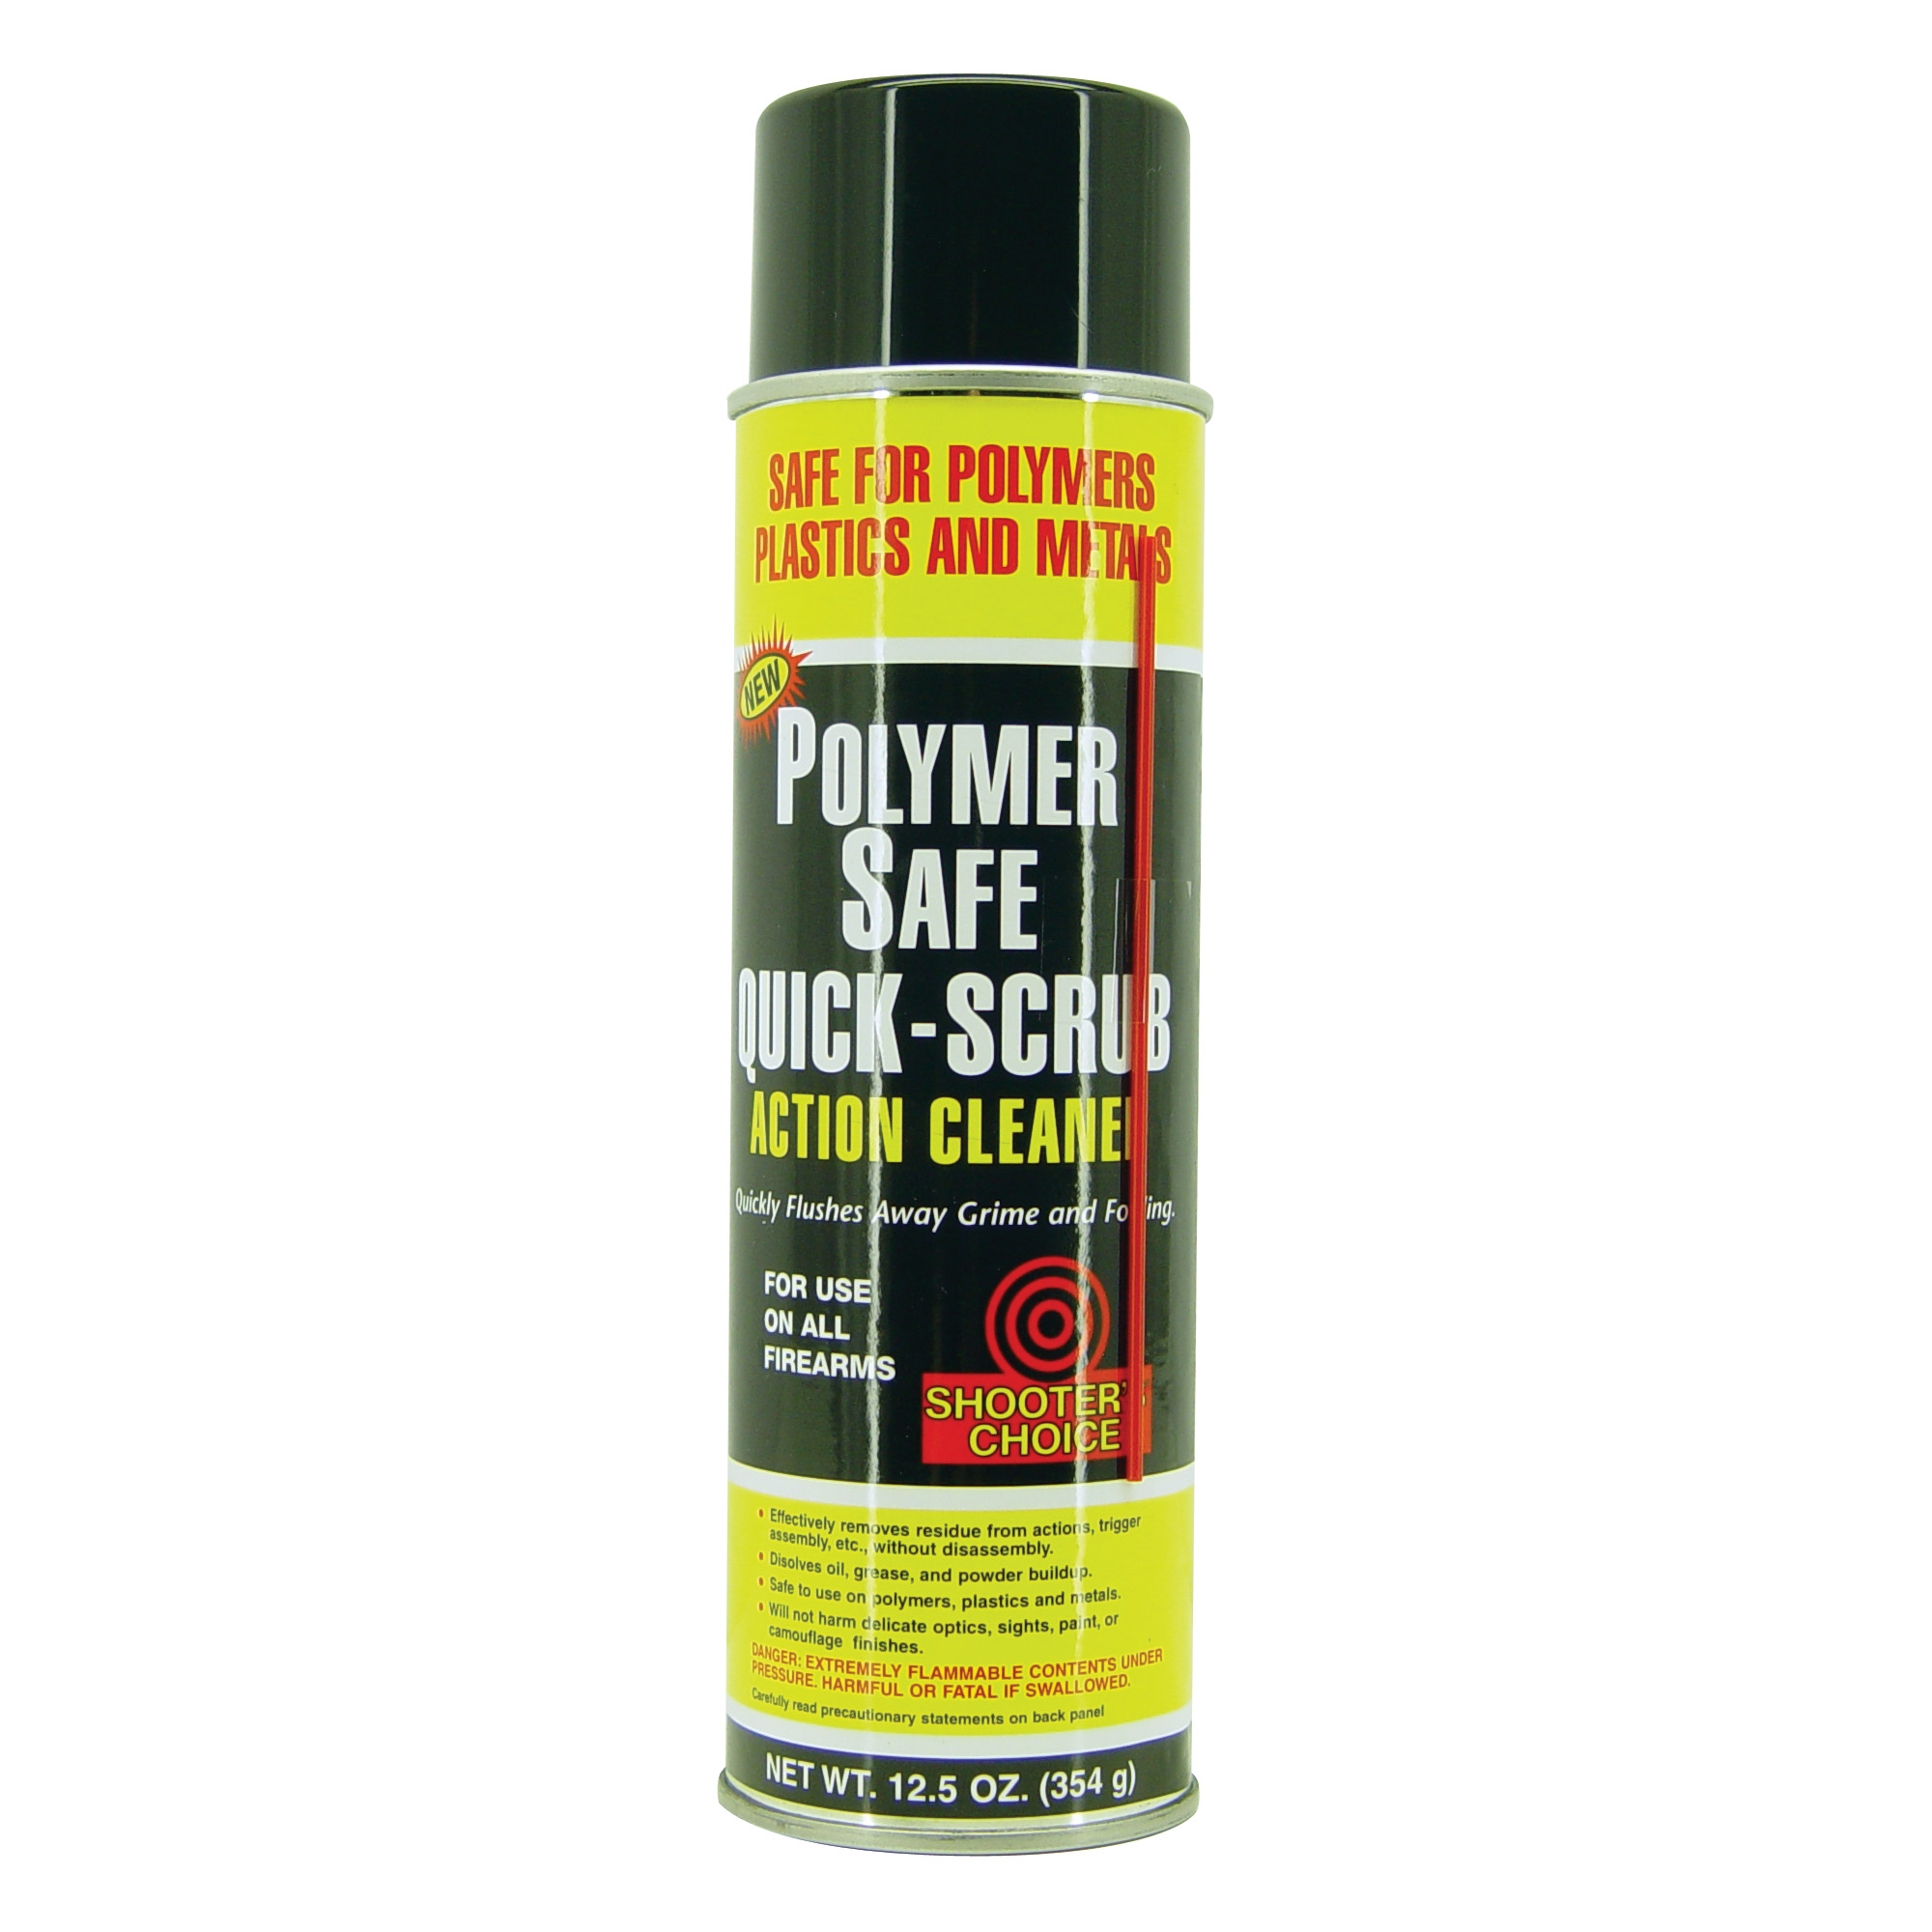 """Shooter's Choice Polymer Safe Quick Scrub is harmless to polymers"""" plastics"""" and camouflage finishes"""" yet quickly flushes away fouling. Perfect for cleaning actions and trigger assemblies (without disassembling). Works great on all firearms."""